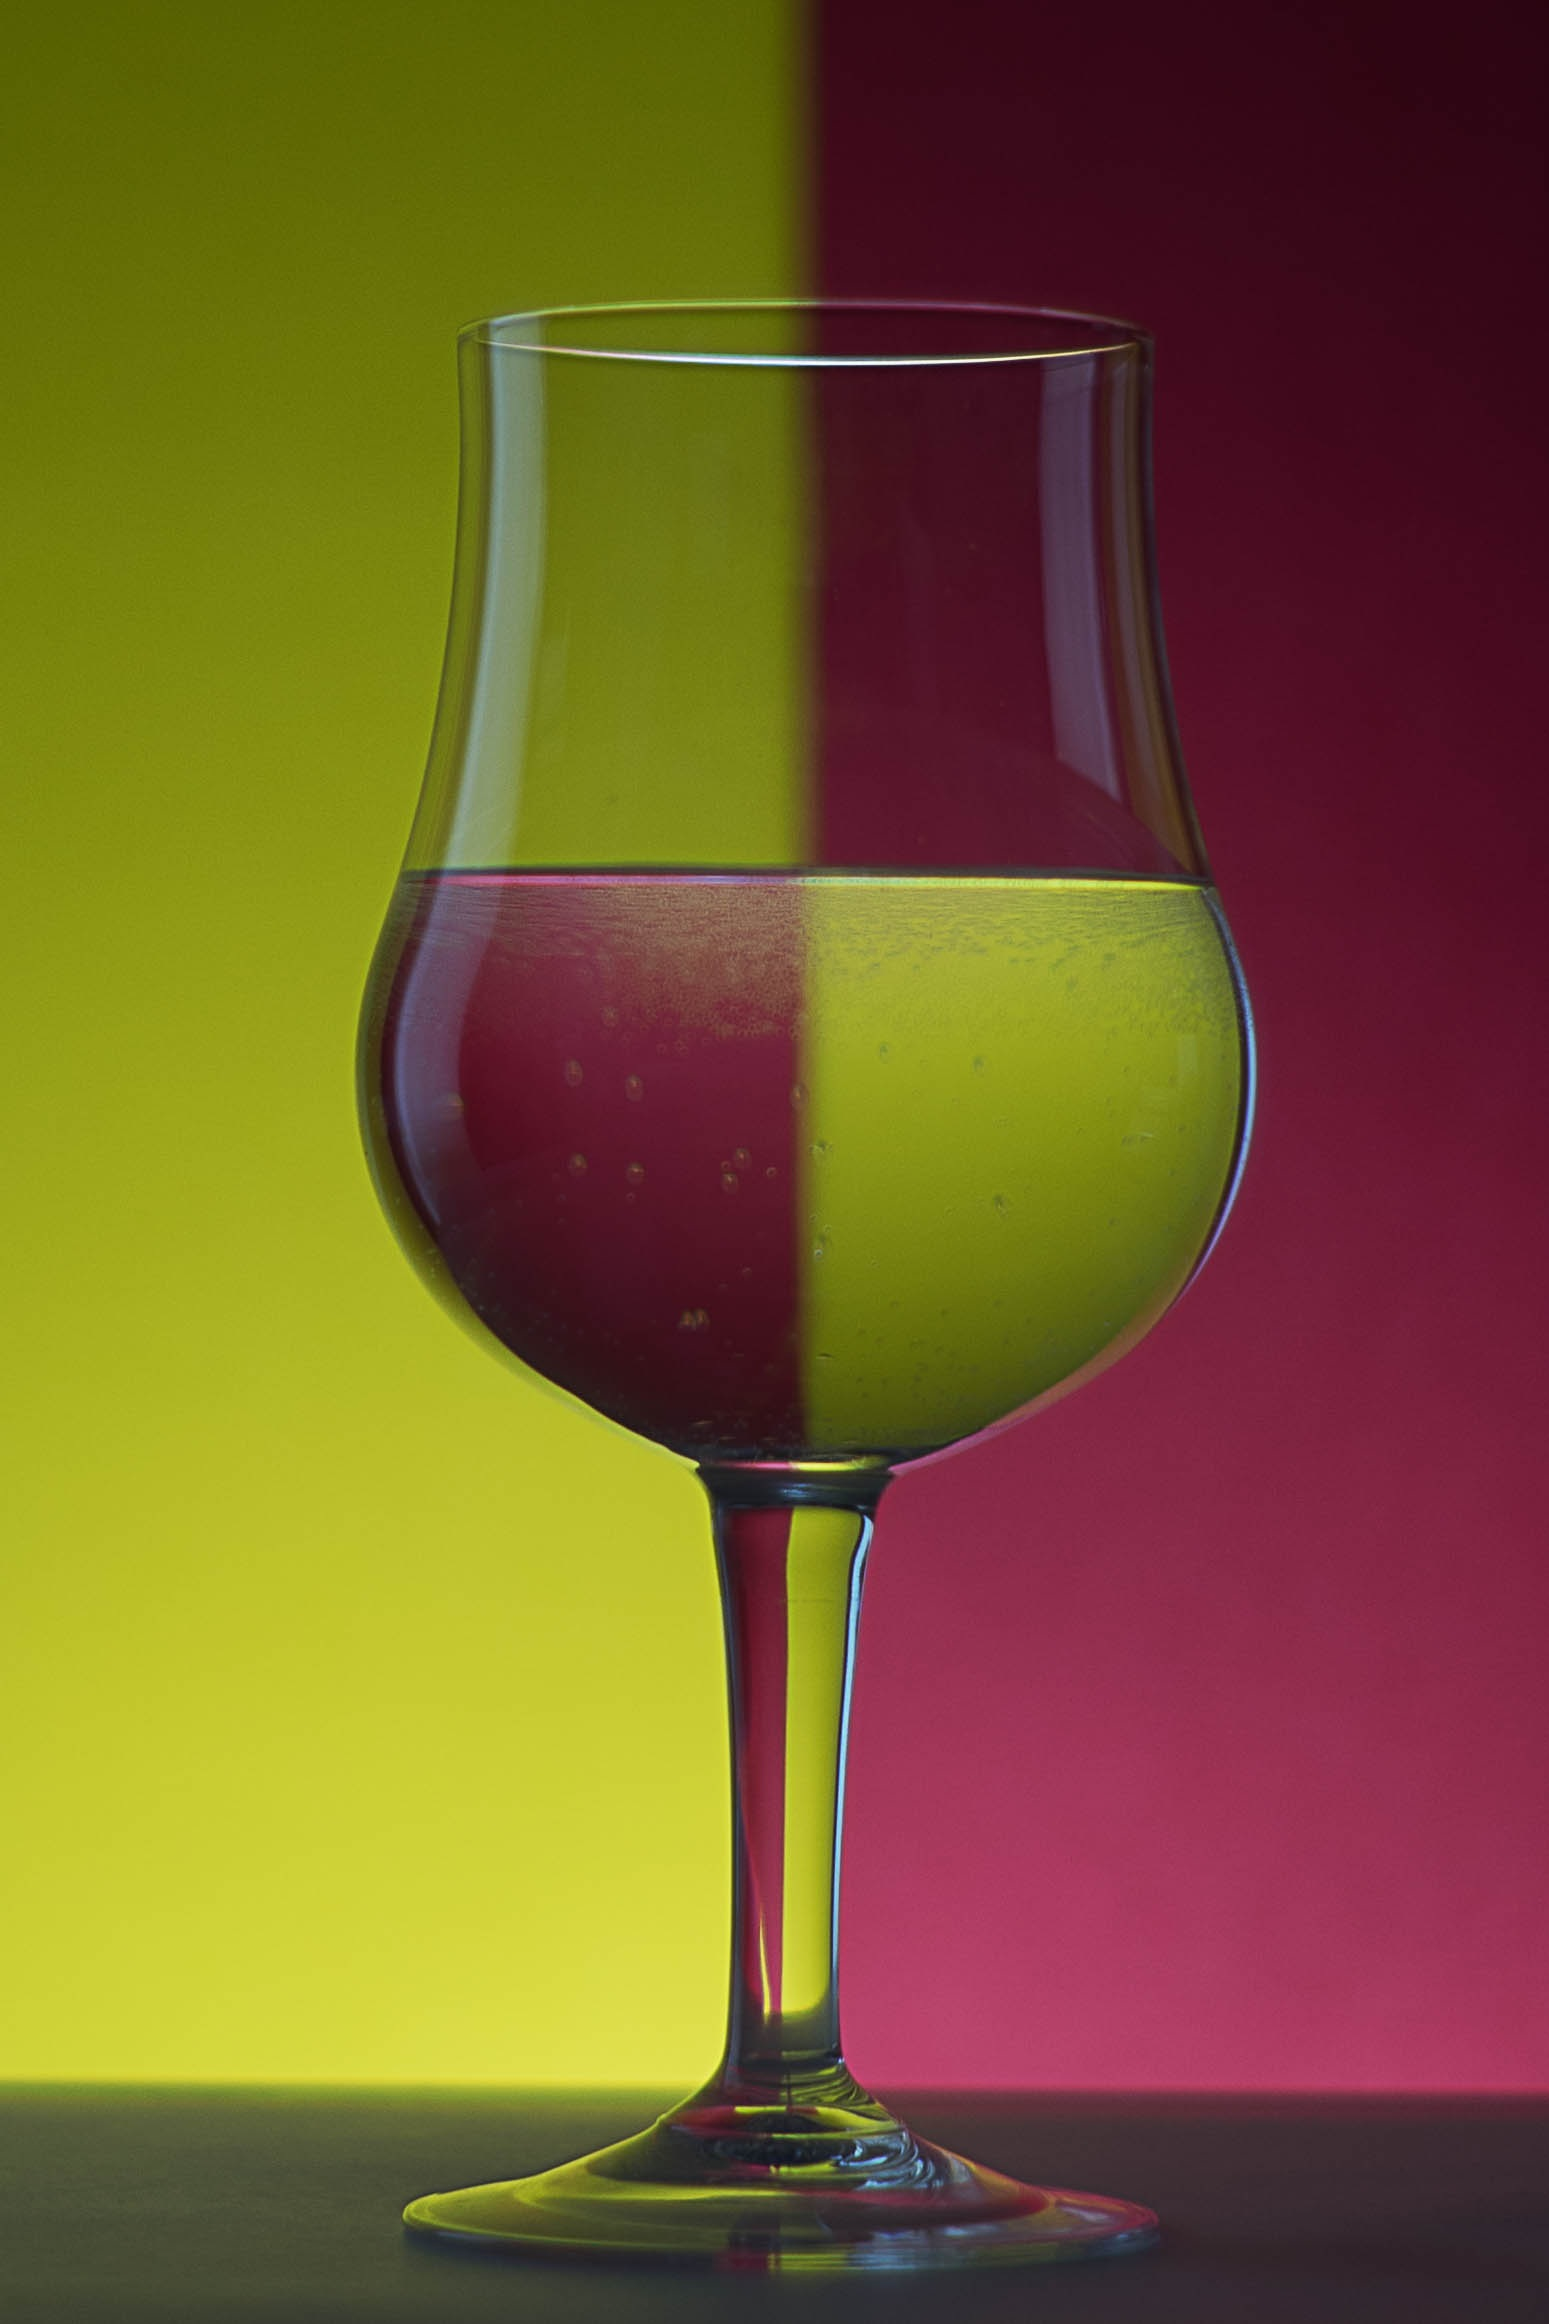 Close-up of Beer Glass Against Colored Background